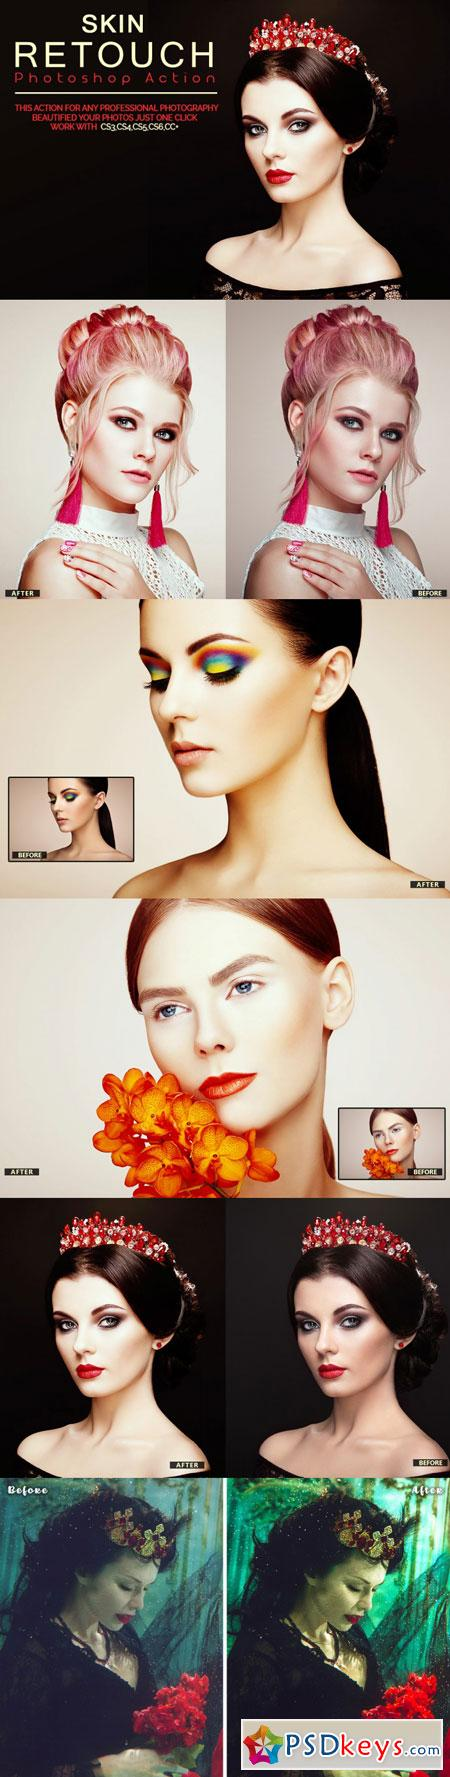 Skin Retouch Photoshop Action 3509467